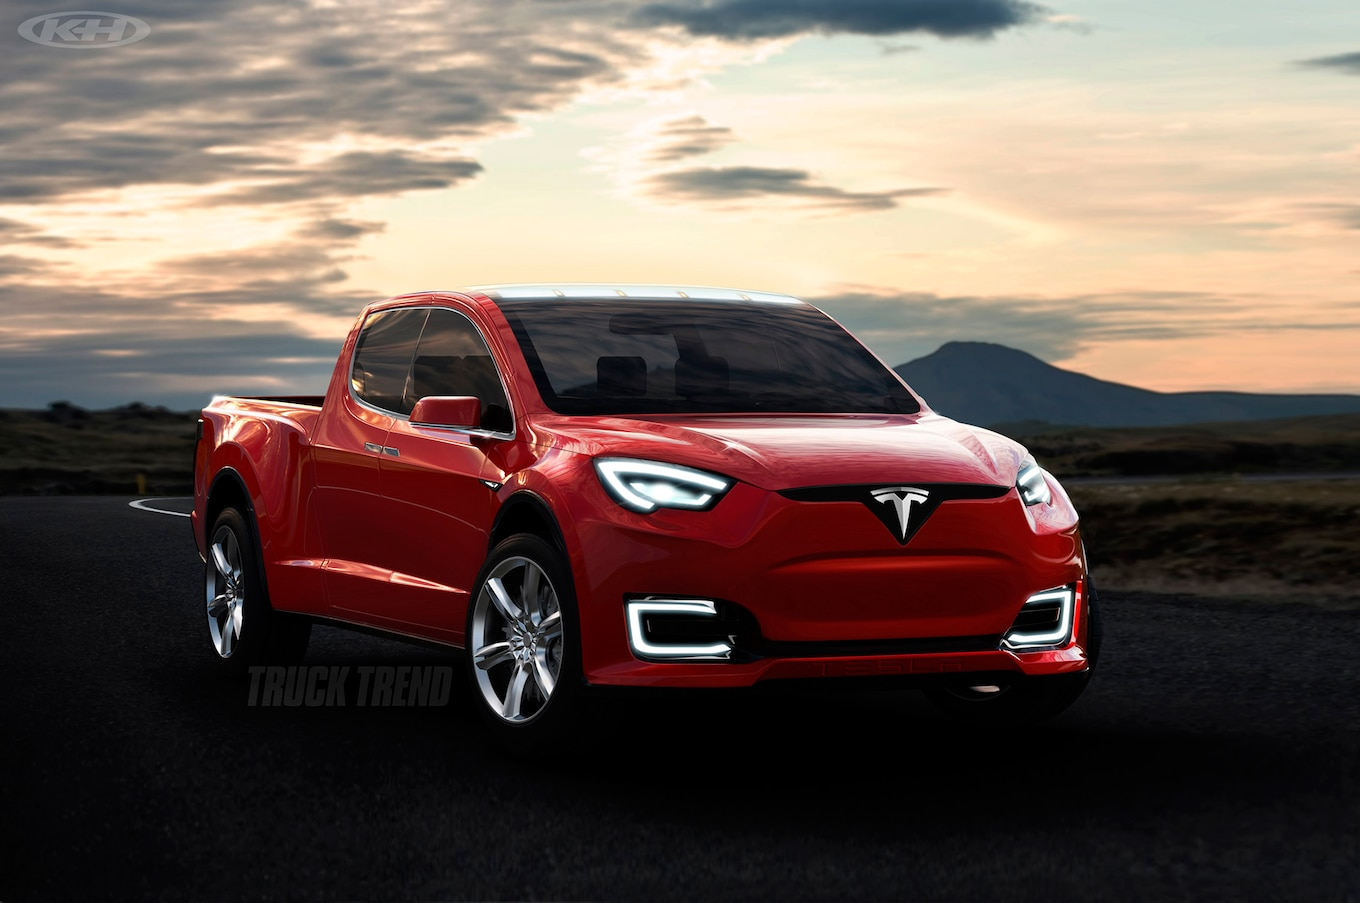 Best Concept Cars Wallpapers Tesla Still Plans To Build A Pickup Truck Elon Musk Says